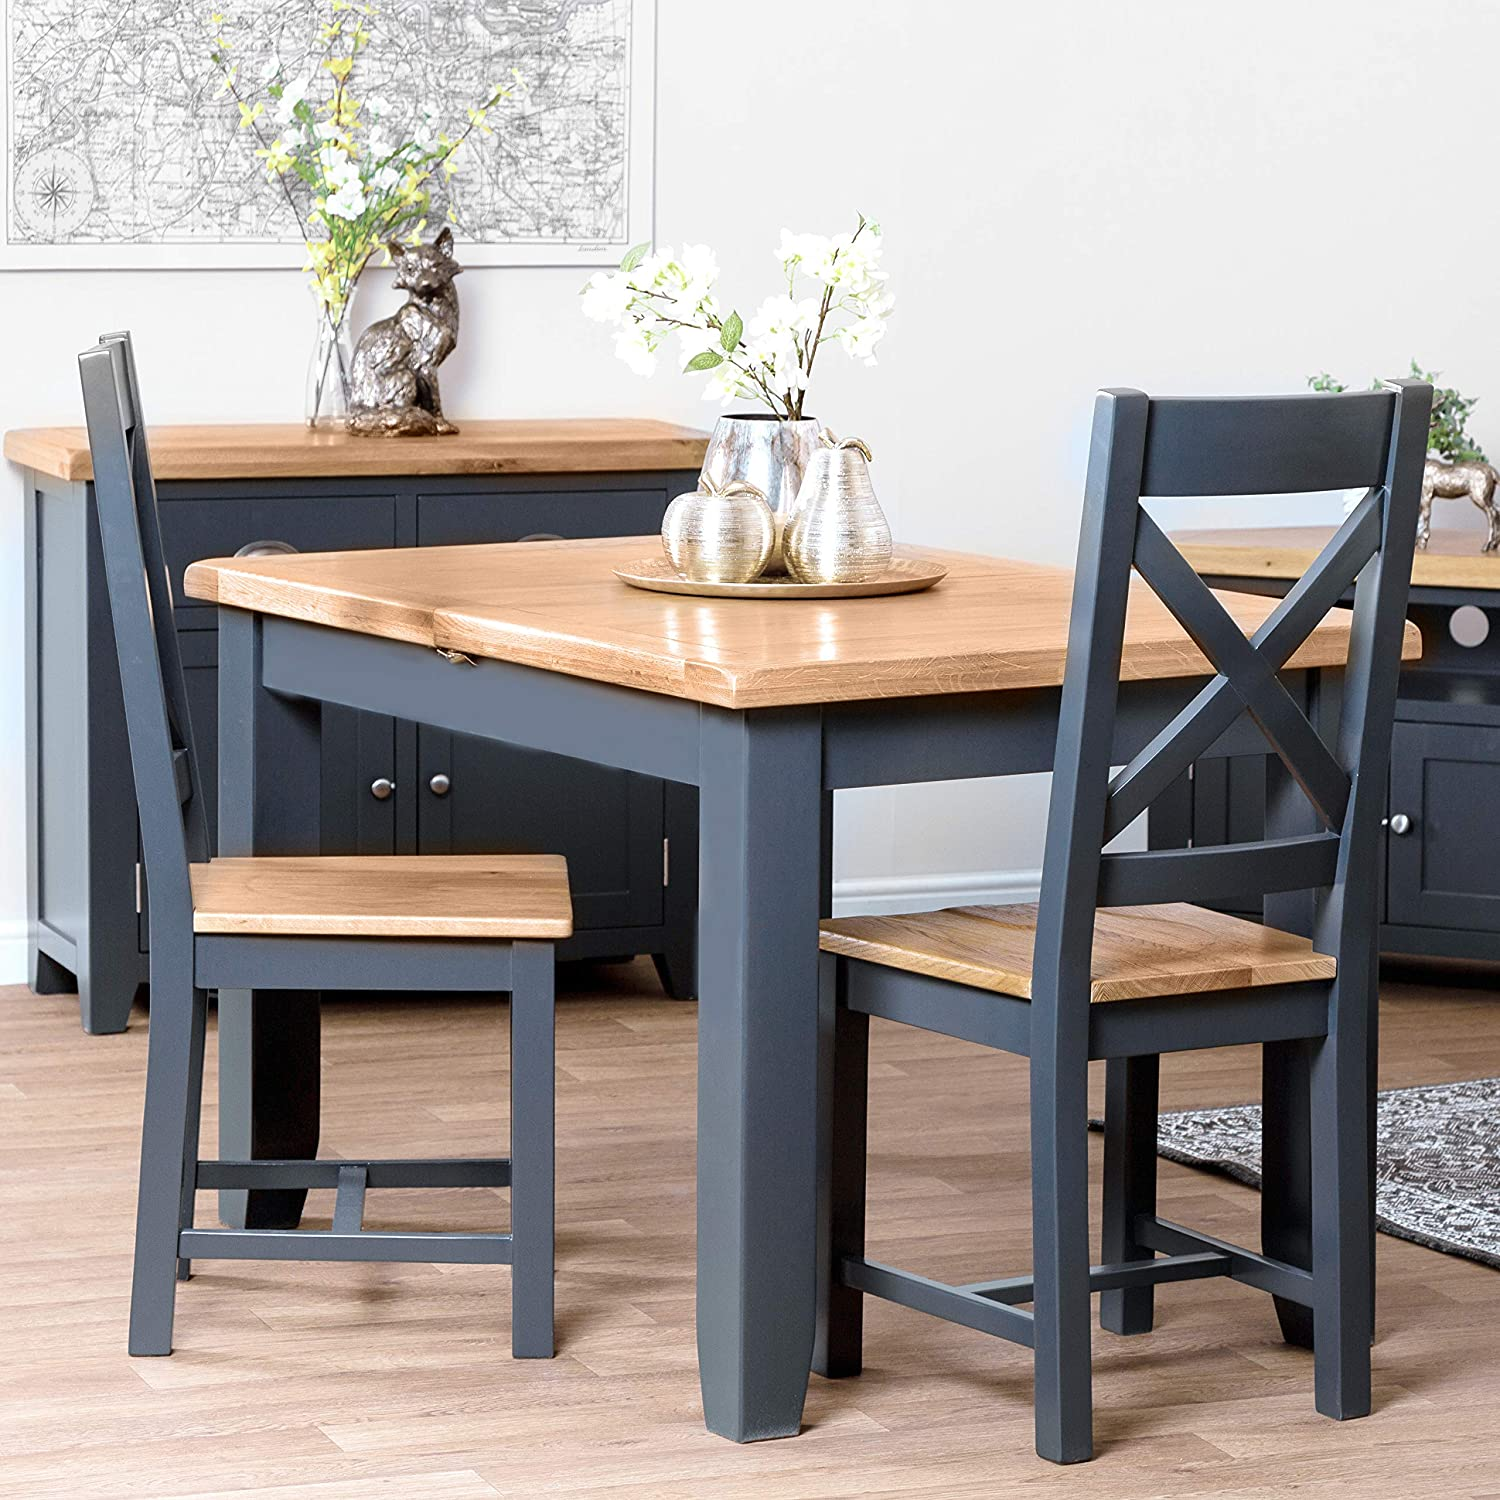 The Furniture Outlet Hampshire Blue Painted Oak Small Extending Dining Table Seats 6 Table Only Amazon Co Uk Kitchen Home